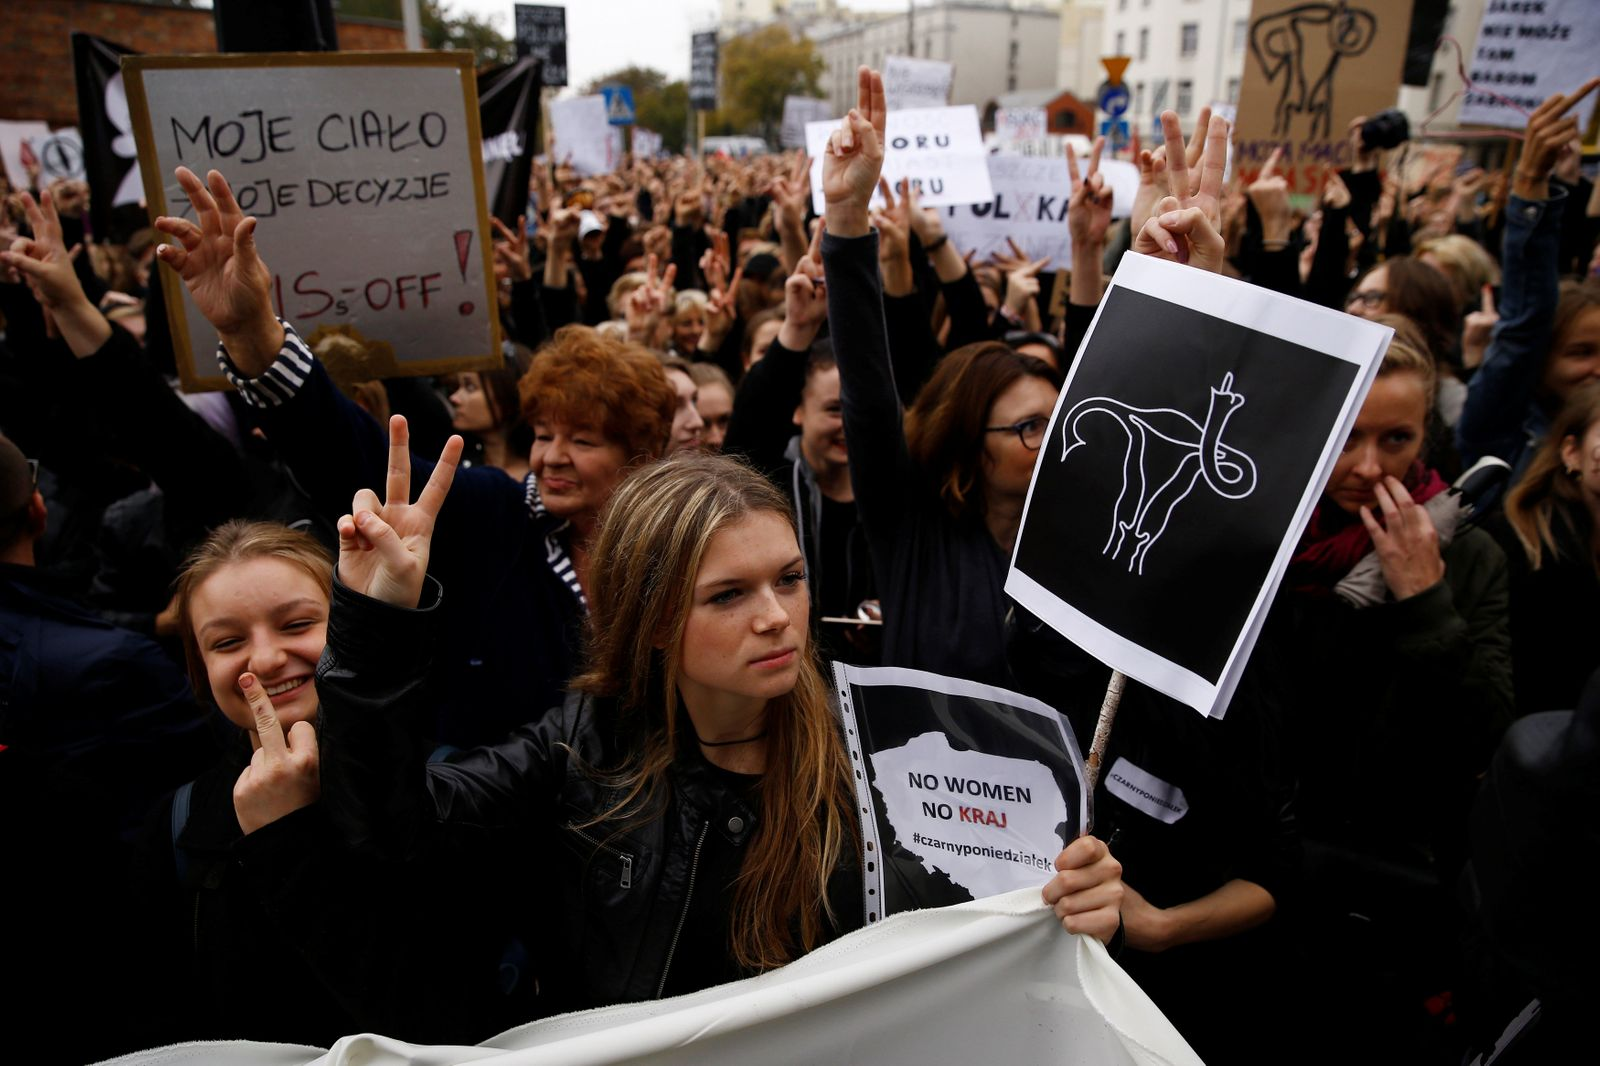 Women gesture as people gather in an abortion rights campaigners' demonstration to protest against plans for a total ban on abortion in front of the ruling party Law and Justice (PiS) headquarters in Warsaw